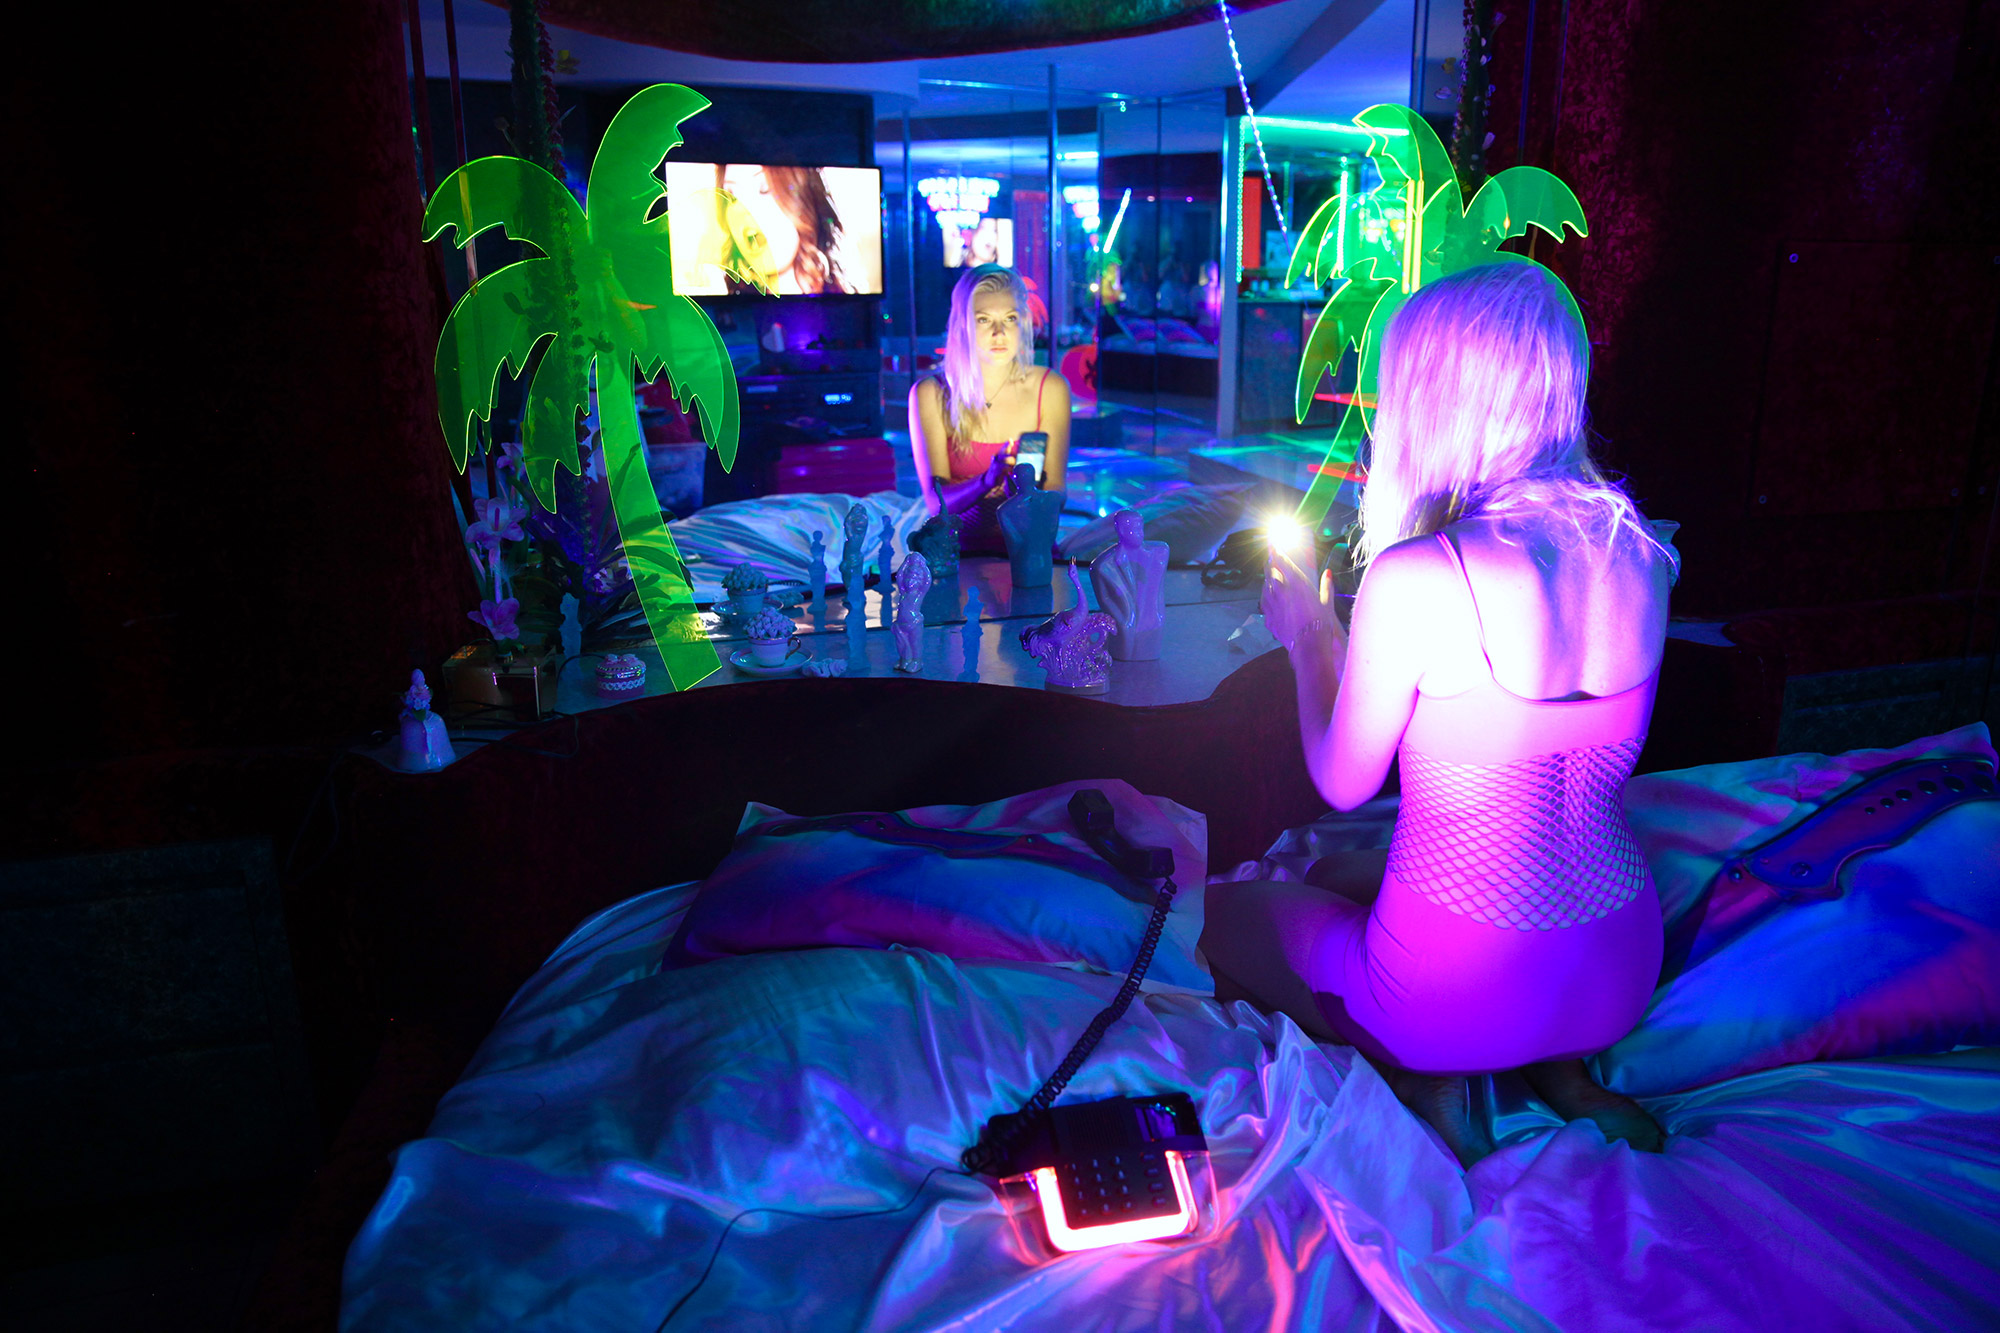 Marina Fini and Signe Pierce, Motelscape - motel bed